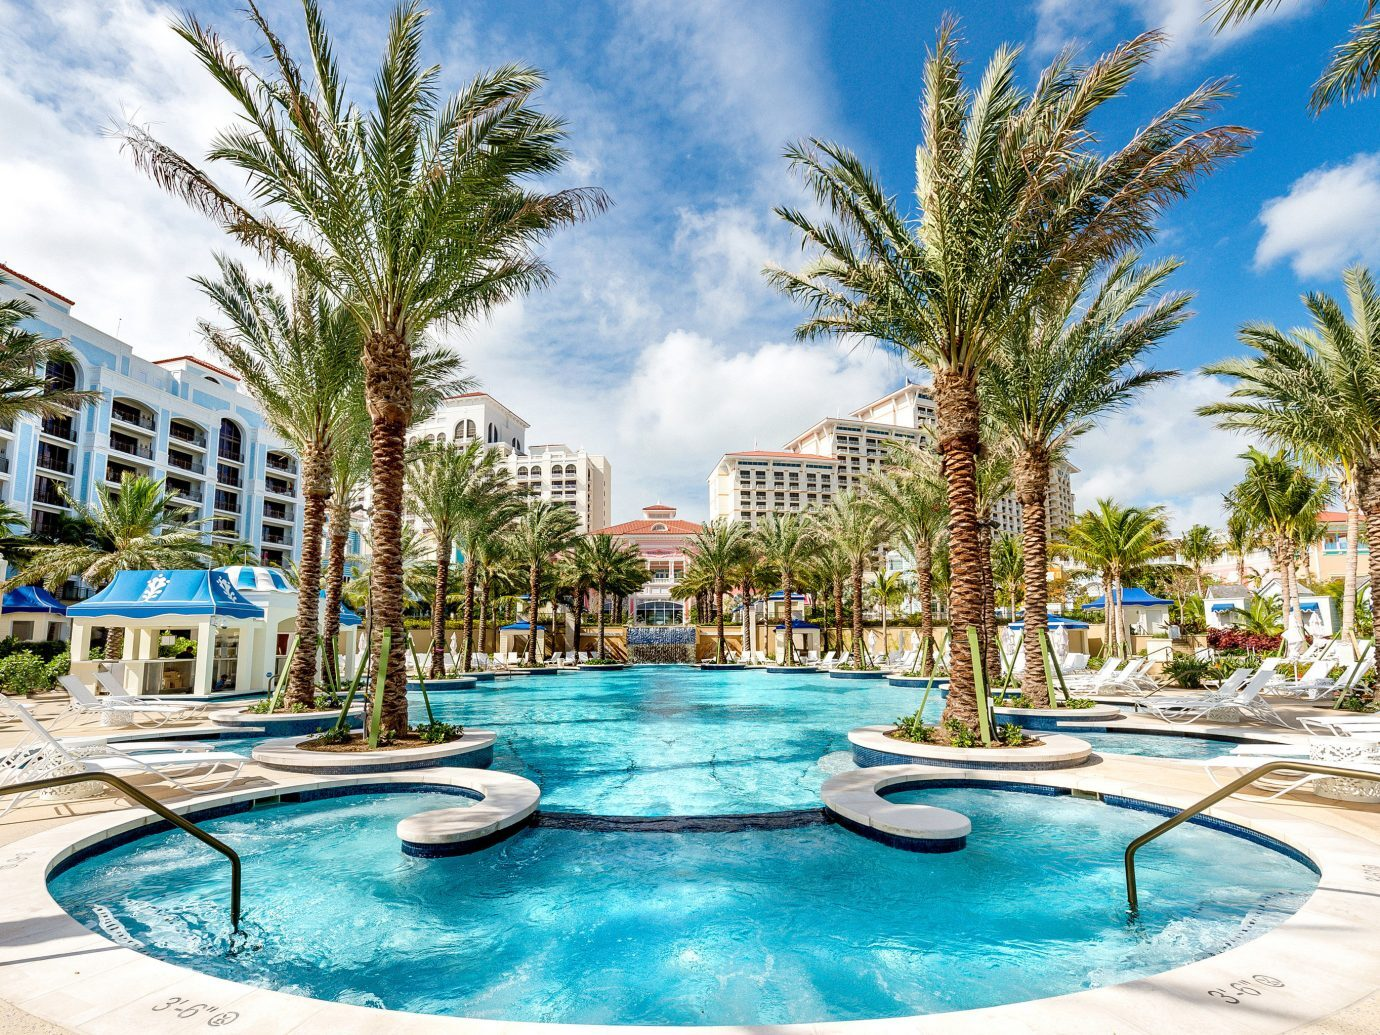 Pool view at Grand Hyatt Baha Mar